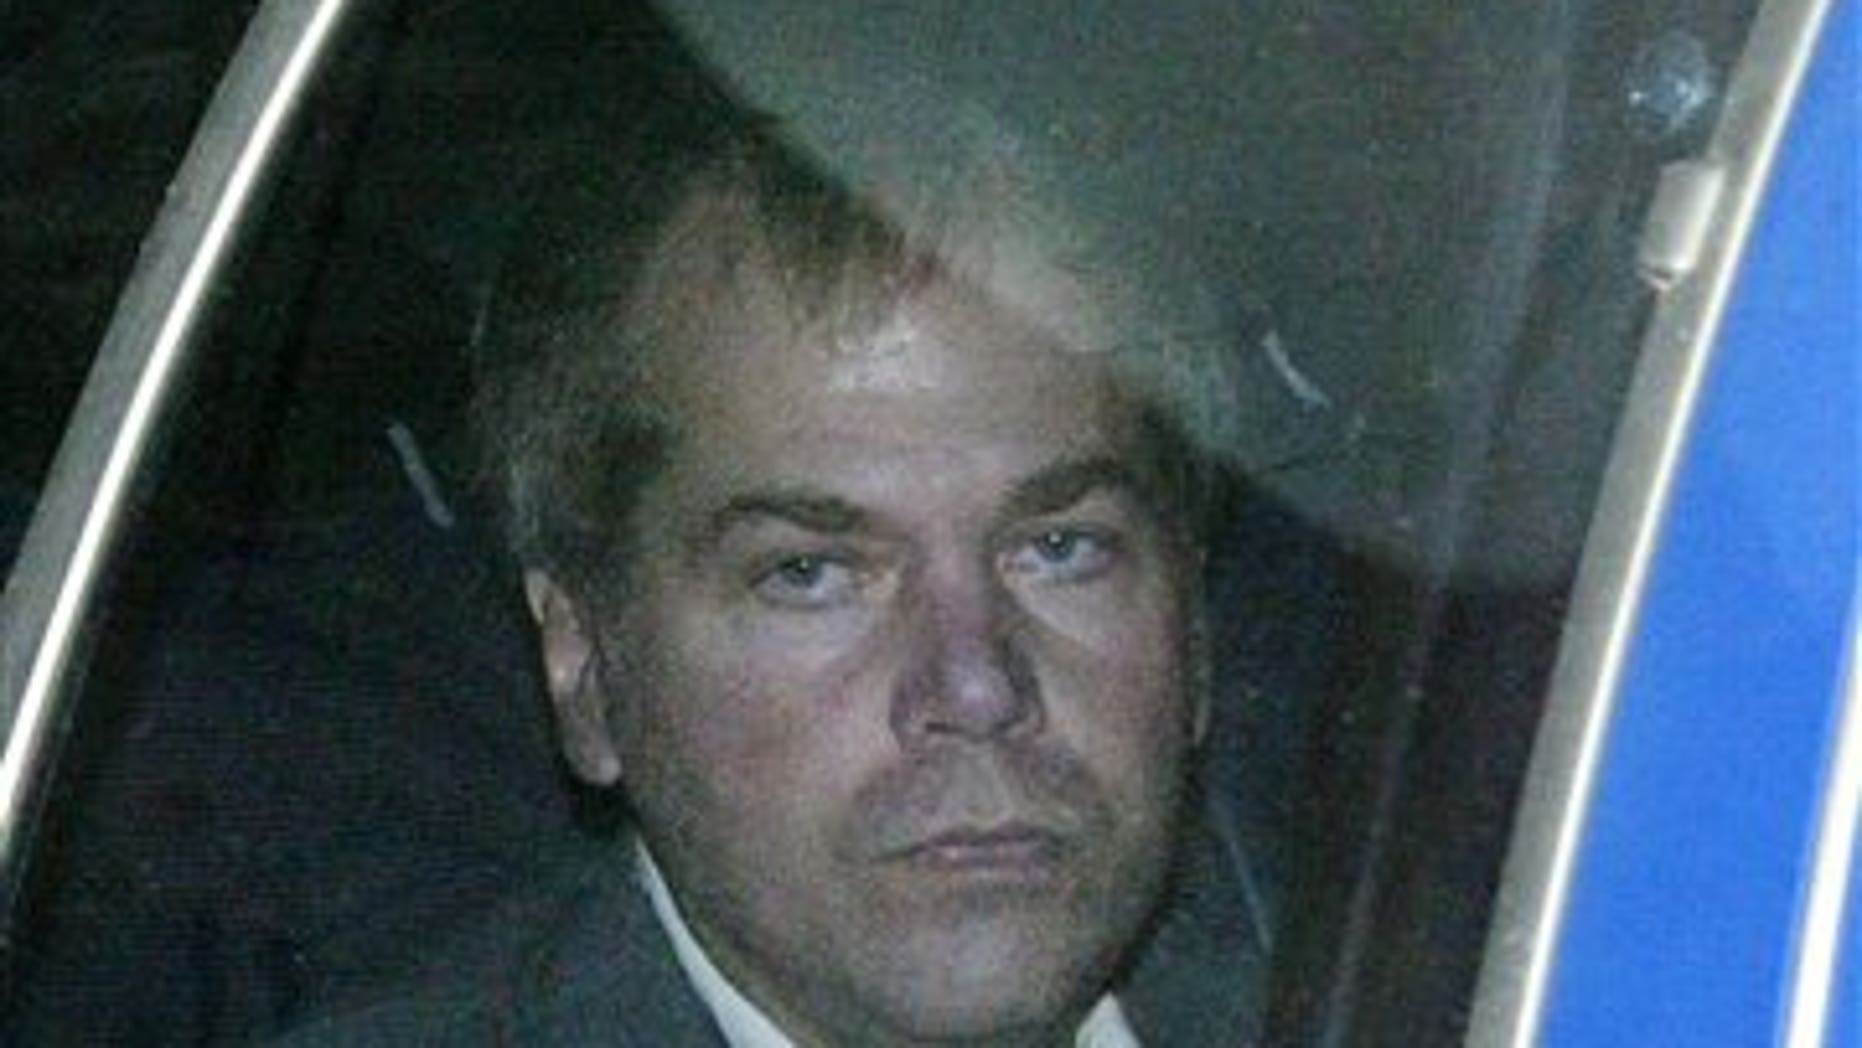 FILE - In a Nov. 18, 2003 file photo, John Hinckley Jr. arrives at U.S. District Court in Washington. Hinckley, who shot Reagan in 1981 to impress actress Jodie Foster, was found not guilty by reason of insanity in the assassination attempt. He has been held for the past three decades at a Washington psychiatric hospital, but has been granted increasing freedom in recent years as doctors say his mental illness has been in remission. (AP Photo/Evan Vucci, File)